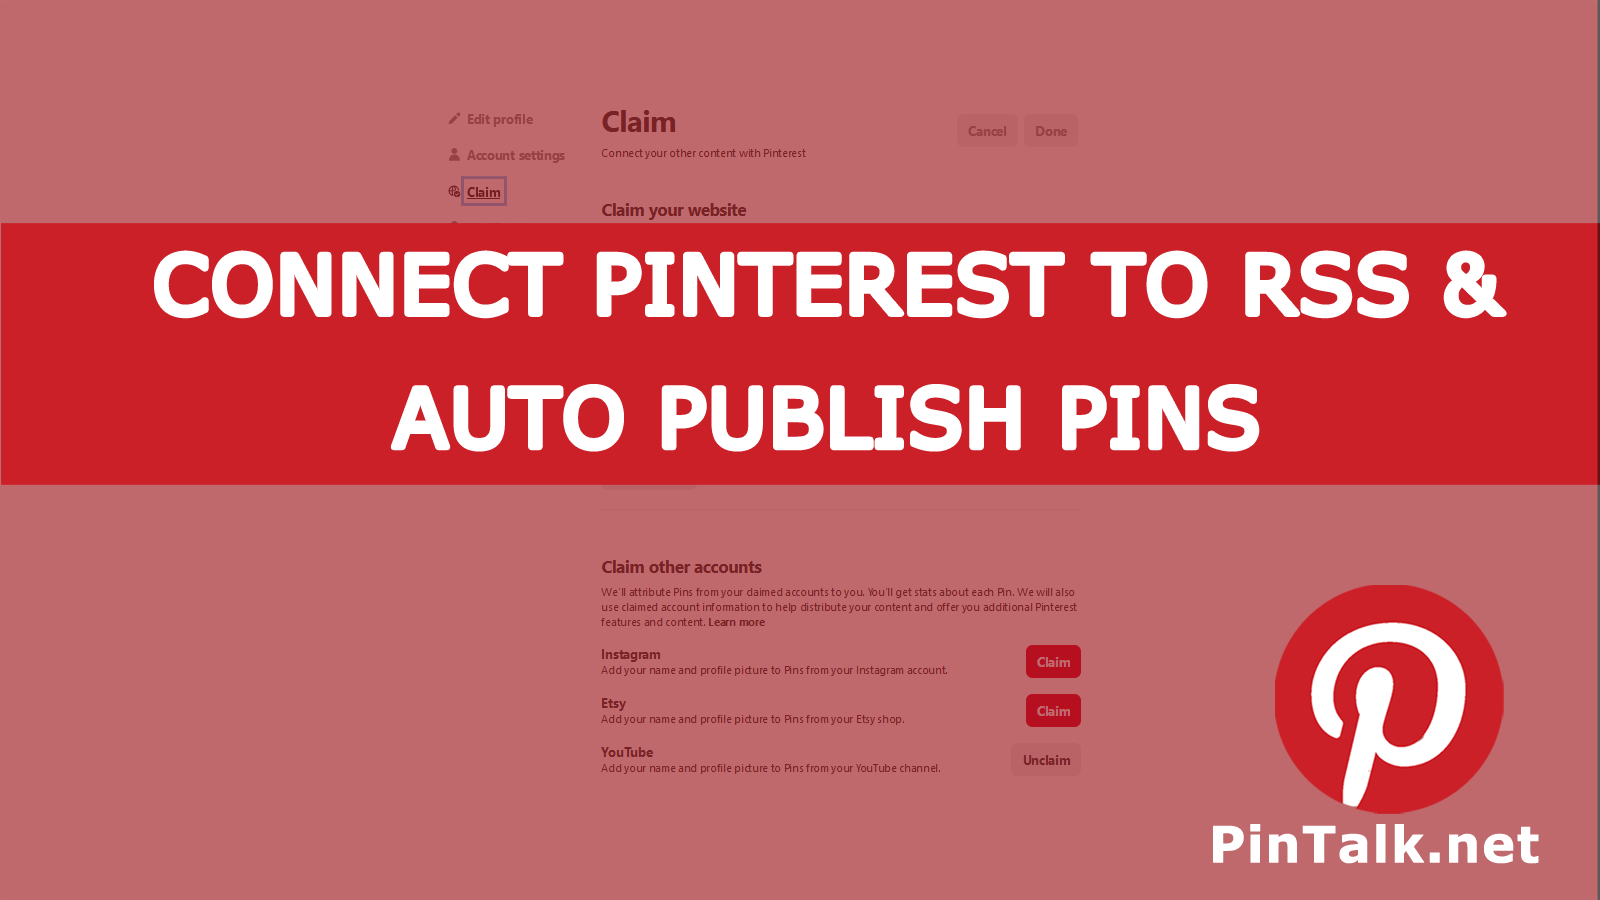 Connect Pinterest To Rss To Auto Publish Pins With Images